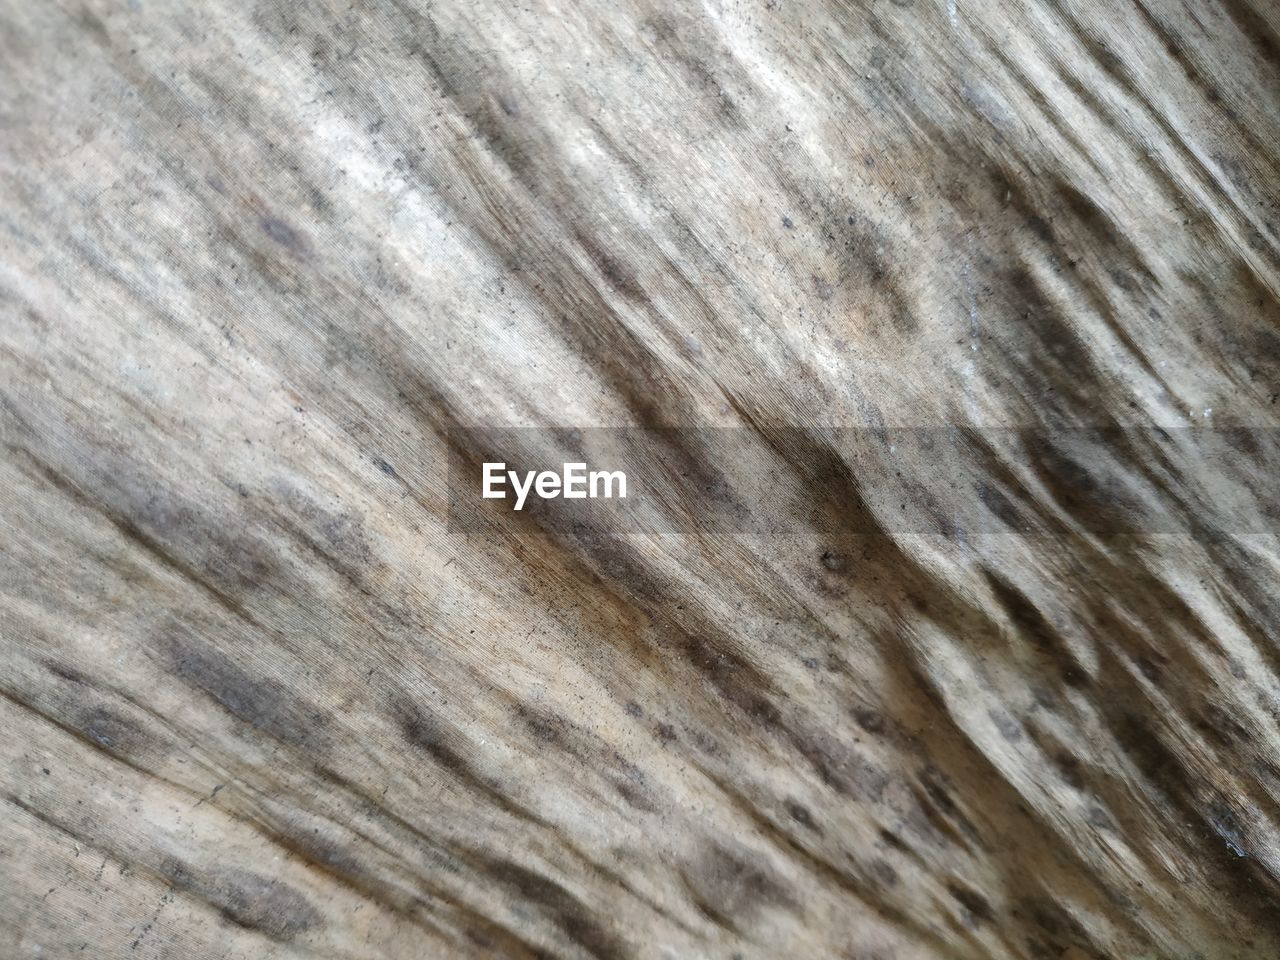 backgrounds, full frame, pattern, textured, no people, close-up, solid, rock, extreme close-up, abstract, marble, nature, rock - object, wood - material, wood, abstract backgrounds, gray, brown, wood grain, outdoors, textured effect, silver colored